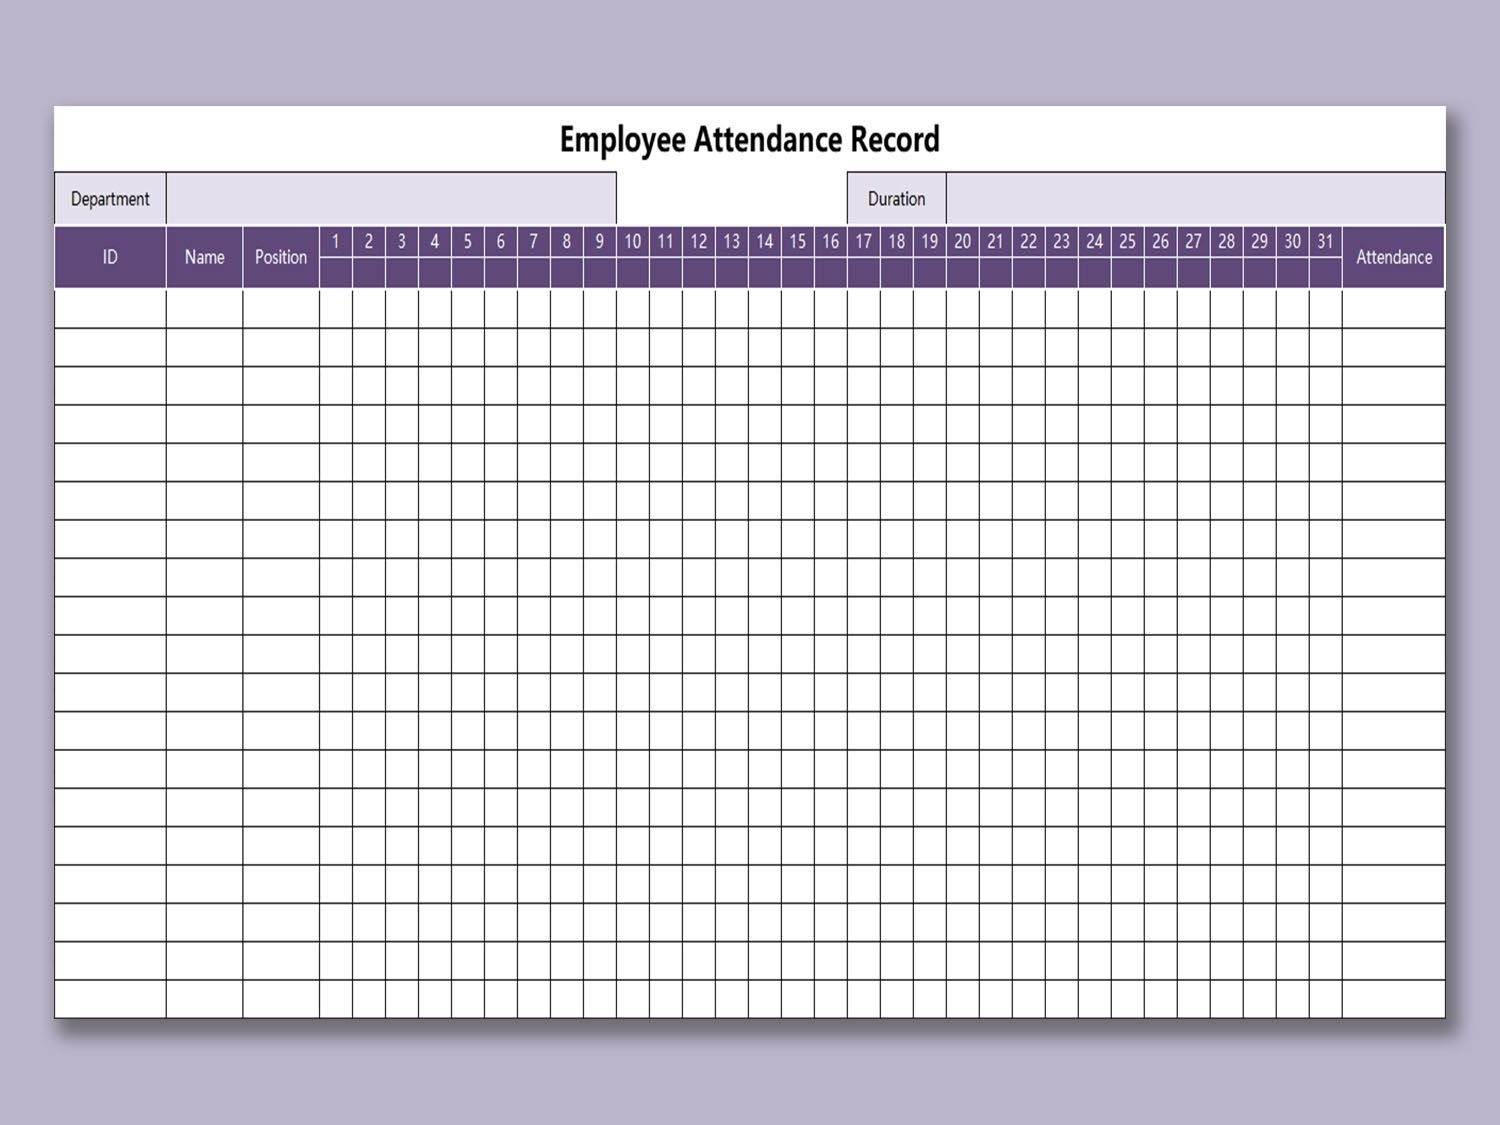 000 Staggering Employee Attendance Record Template Excel Picture  Free Download With TimeFull